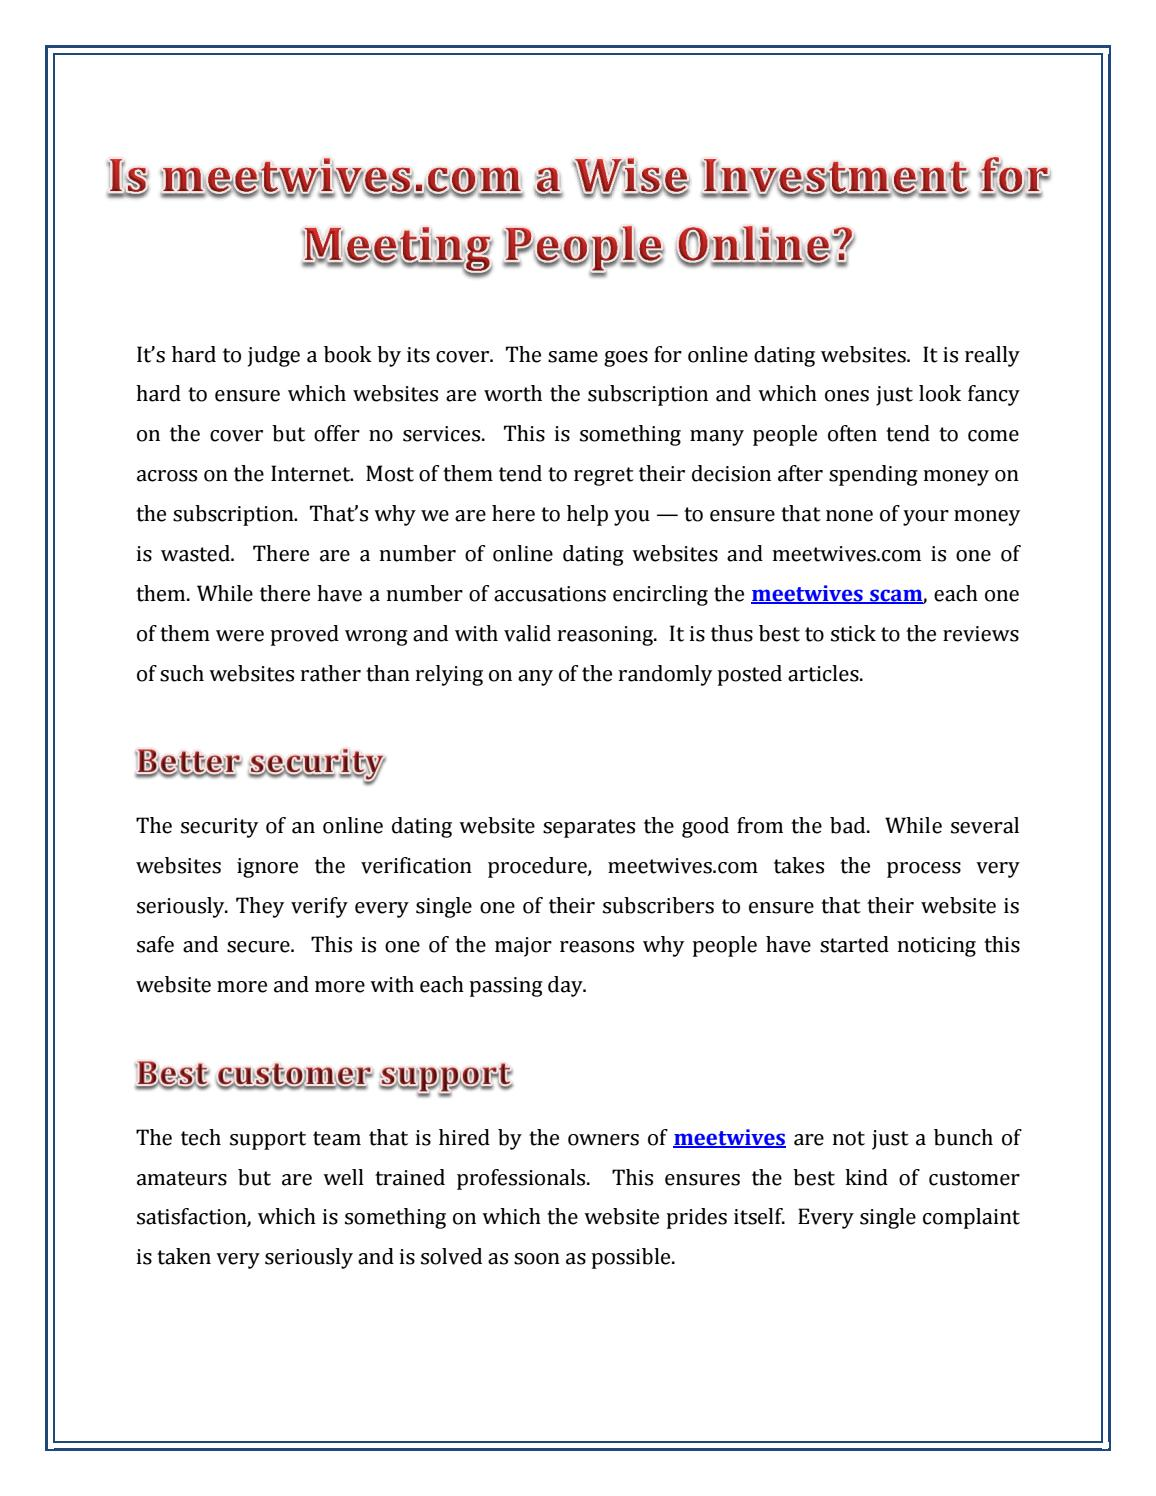 Can we trust Meetwives COM? by Meet Wives - issuu